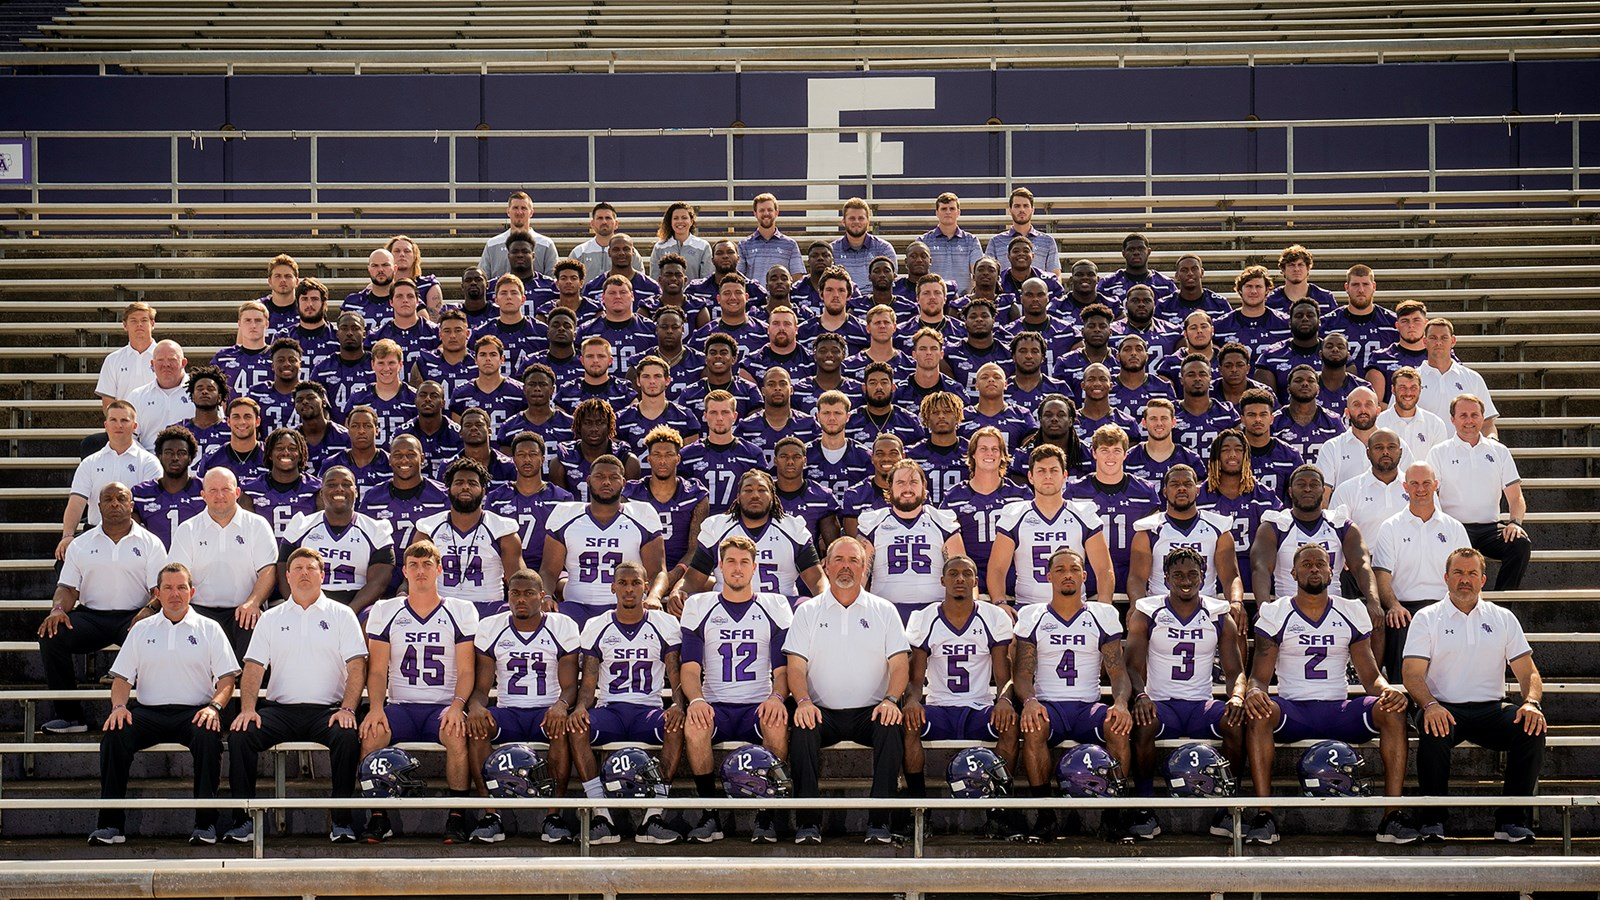 2018 Football Roster Stephen F Austin State University Athletics